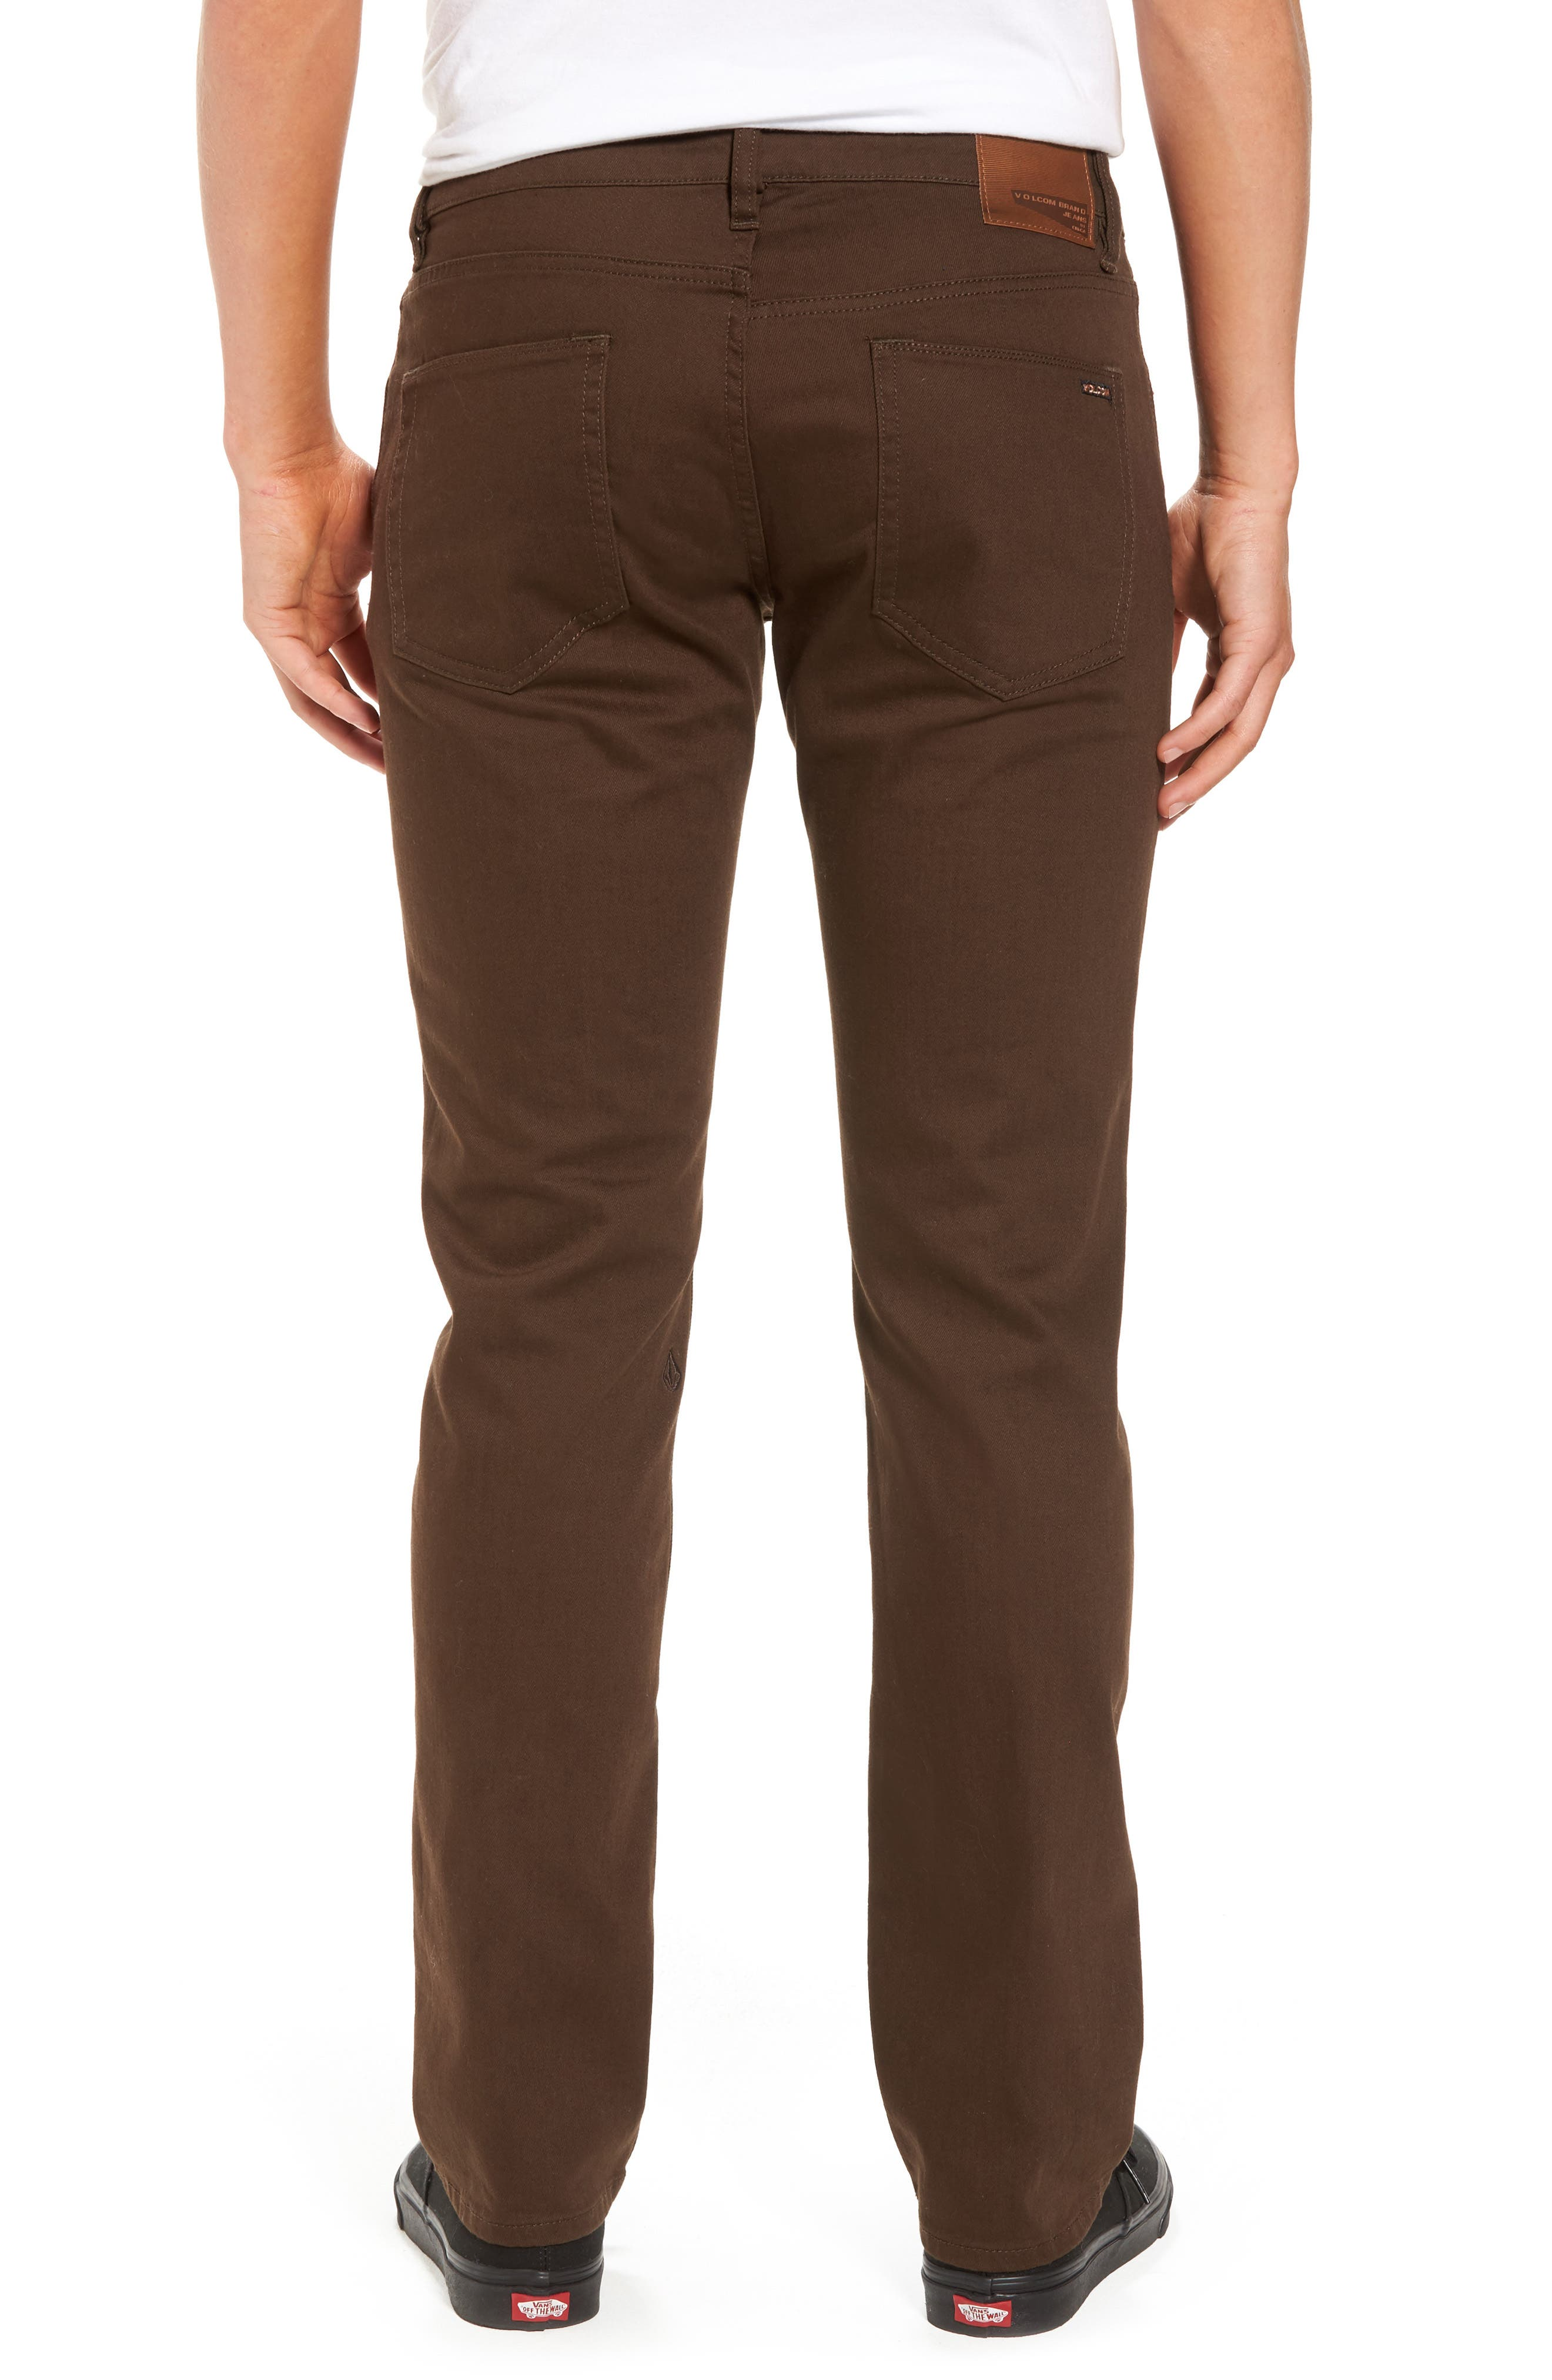 Vorta Slub Pants,                             Alternate thumbnail 5, color,